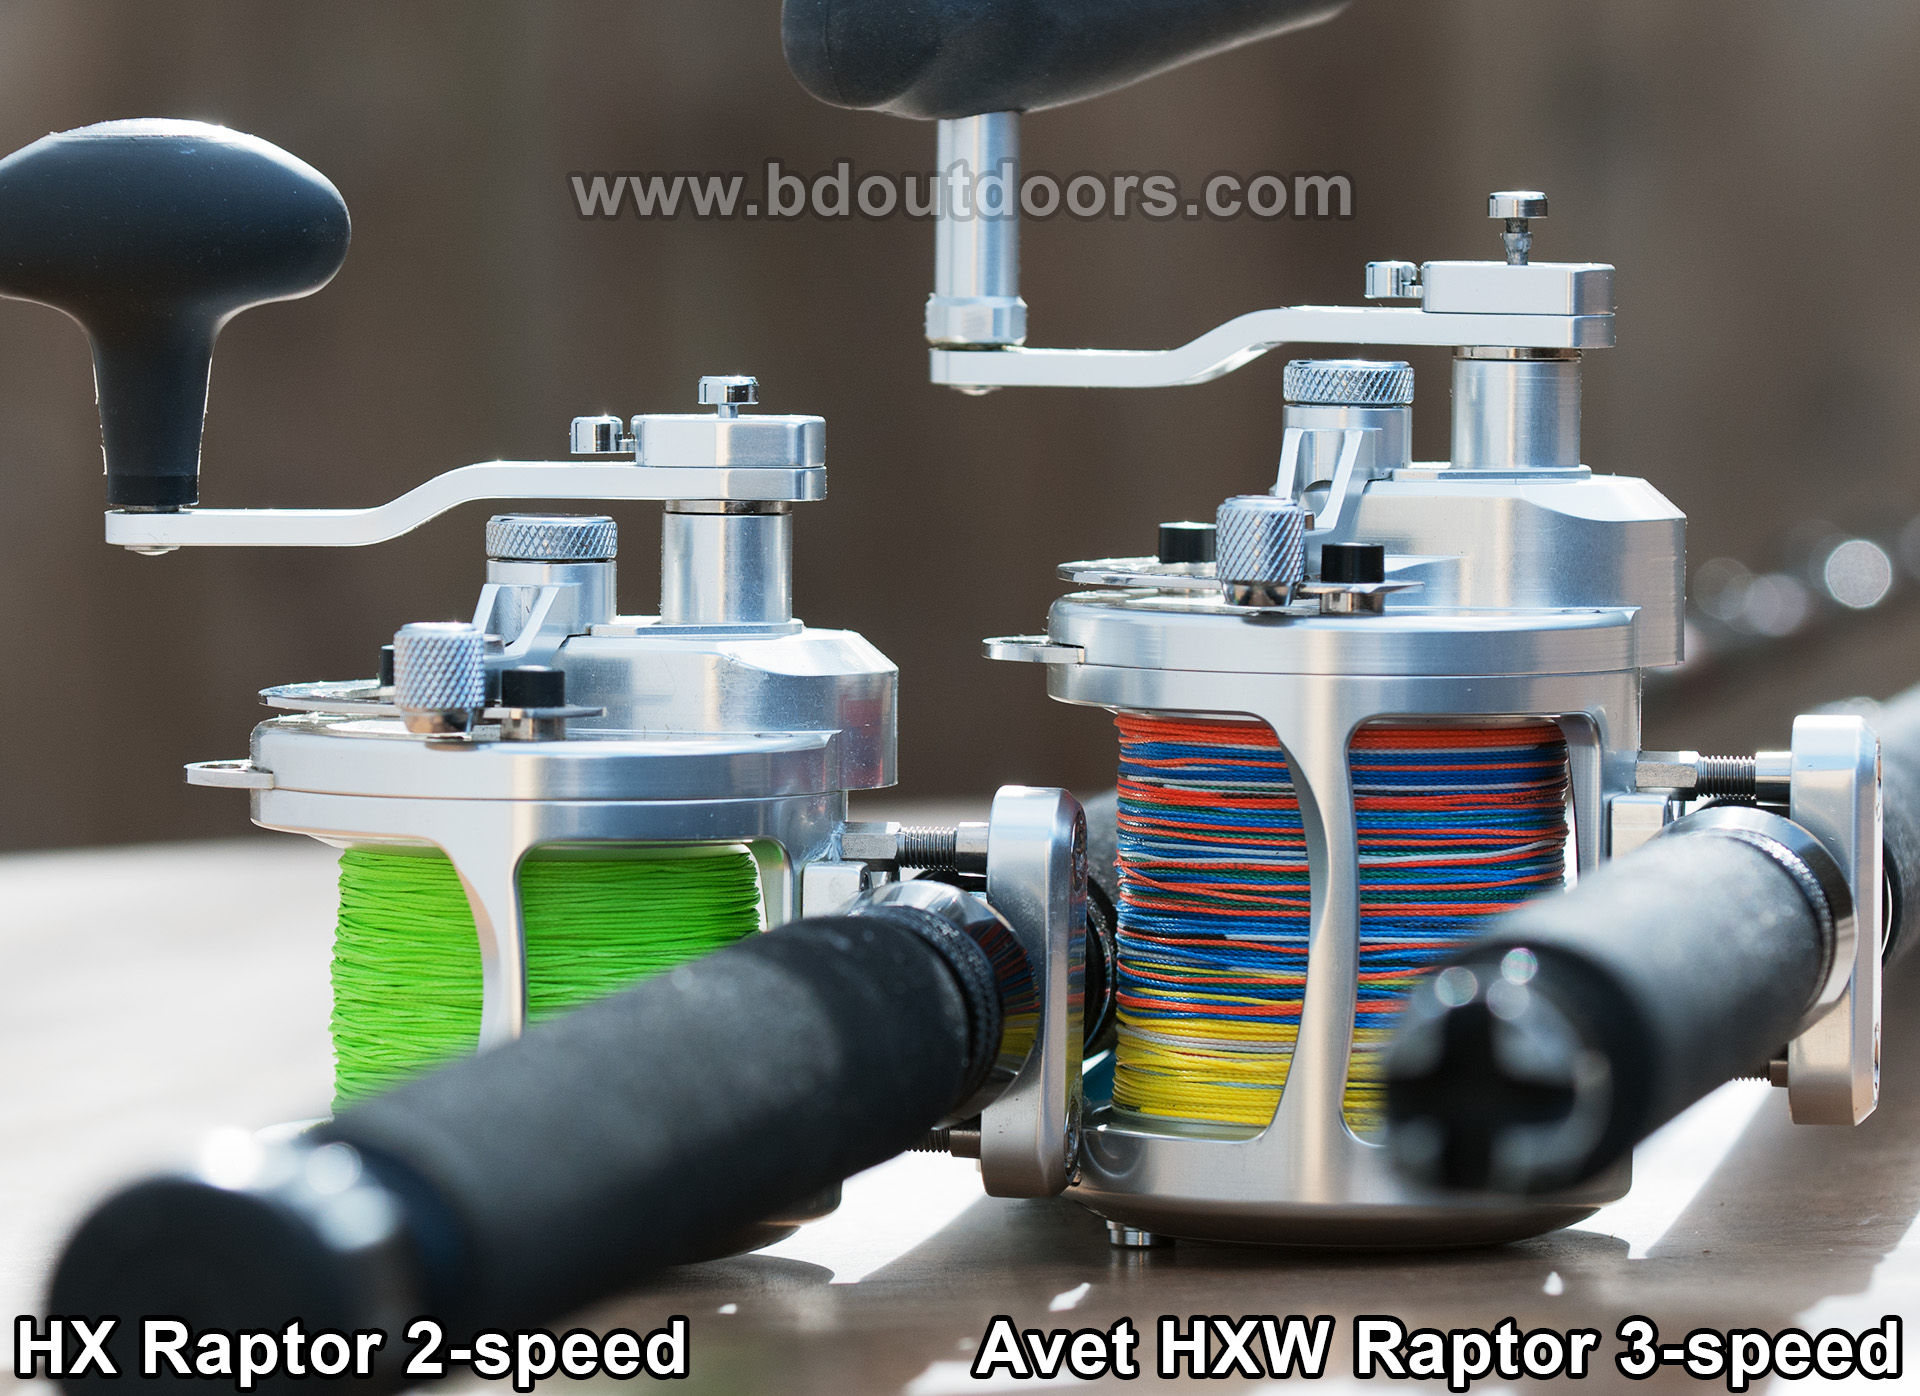 REVIEW COMPARE AVET REELS HX 2-speed HXW 3-speed RAPTOR Gear